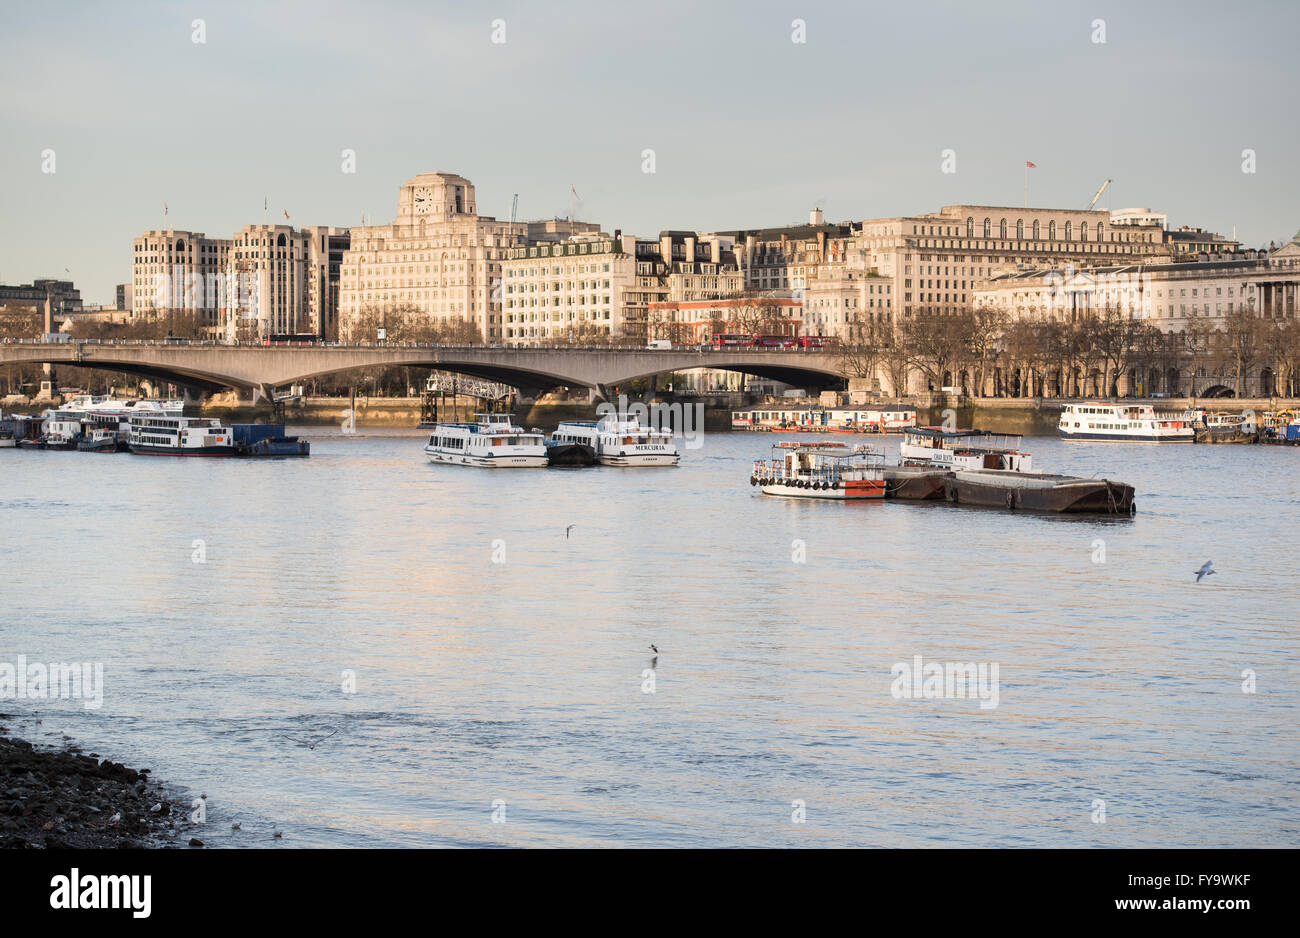 Looking west along the River Thames towards Waterloo Bridge and the buildings along Victoria Embankment - Stock Image